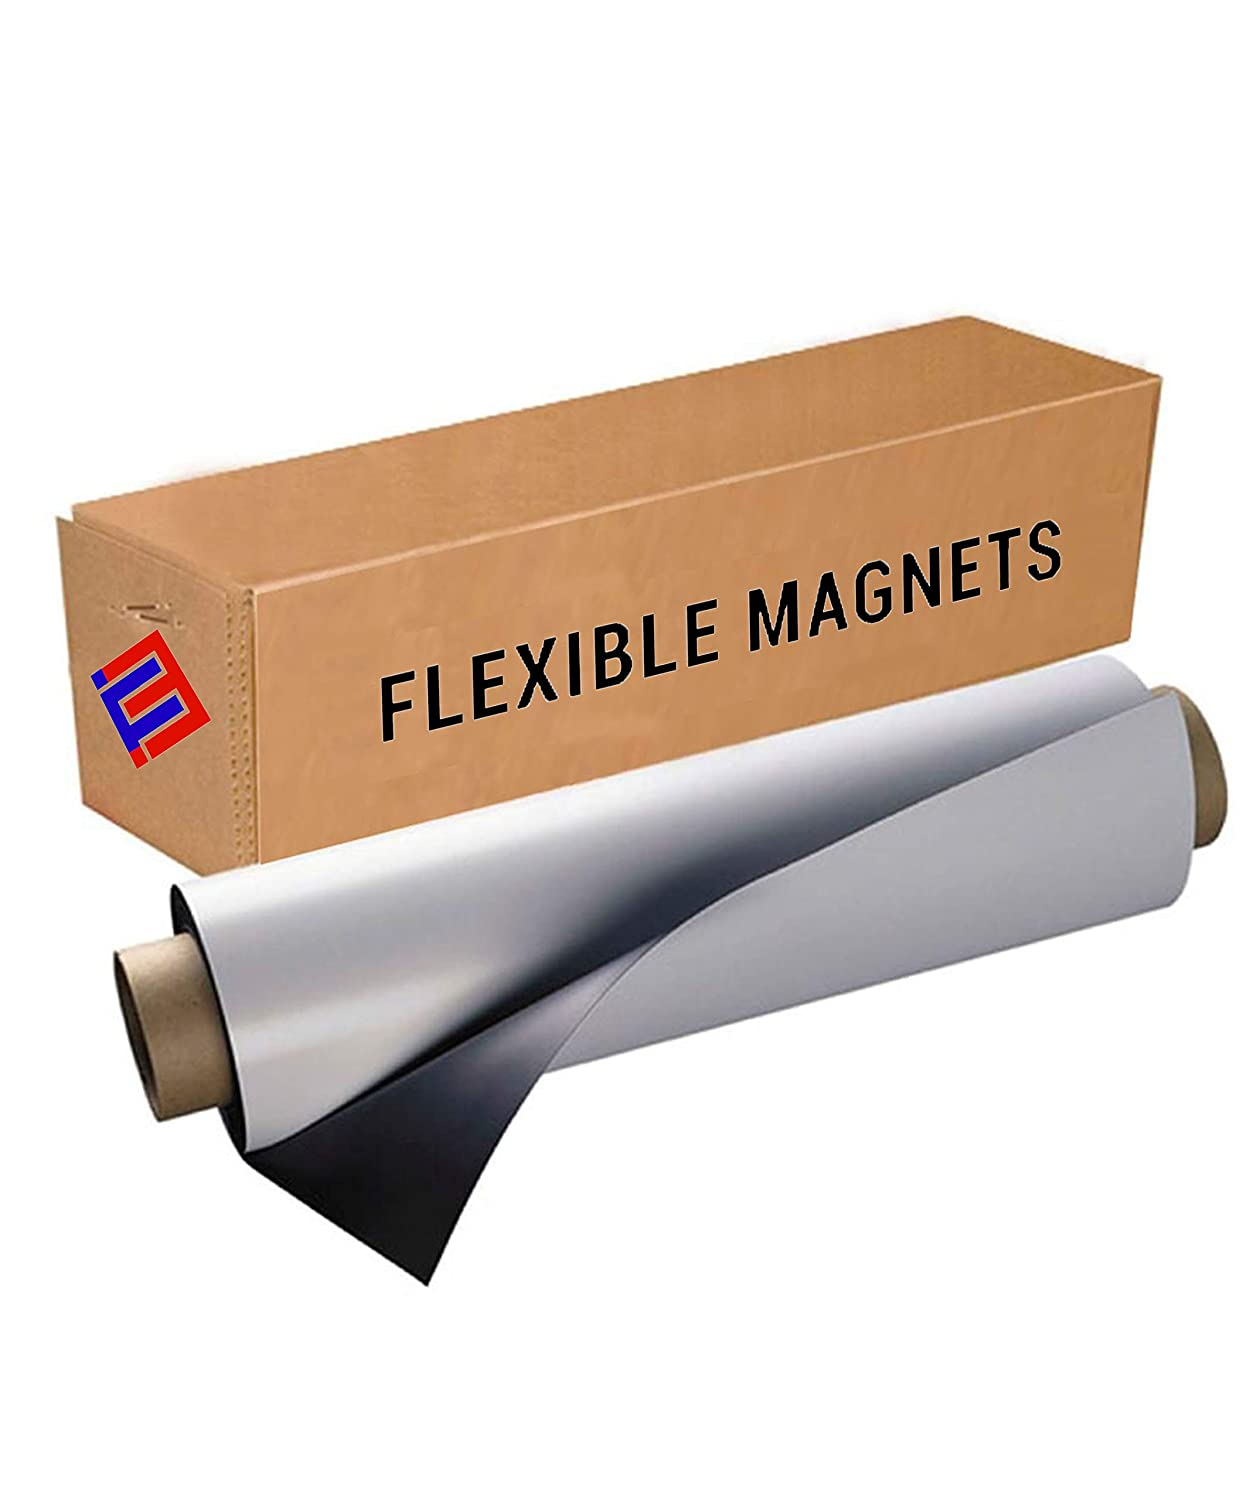 24 x 30 x 30 mil Commercial Inkjet Printable White Flexible Vinyl Roll of Magnet Sheets Super Strong /& Ideal for Crafts